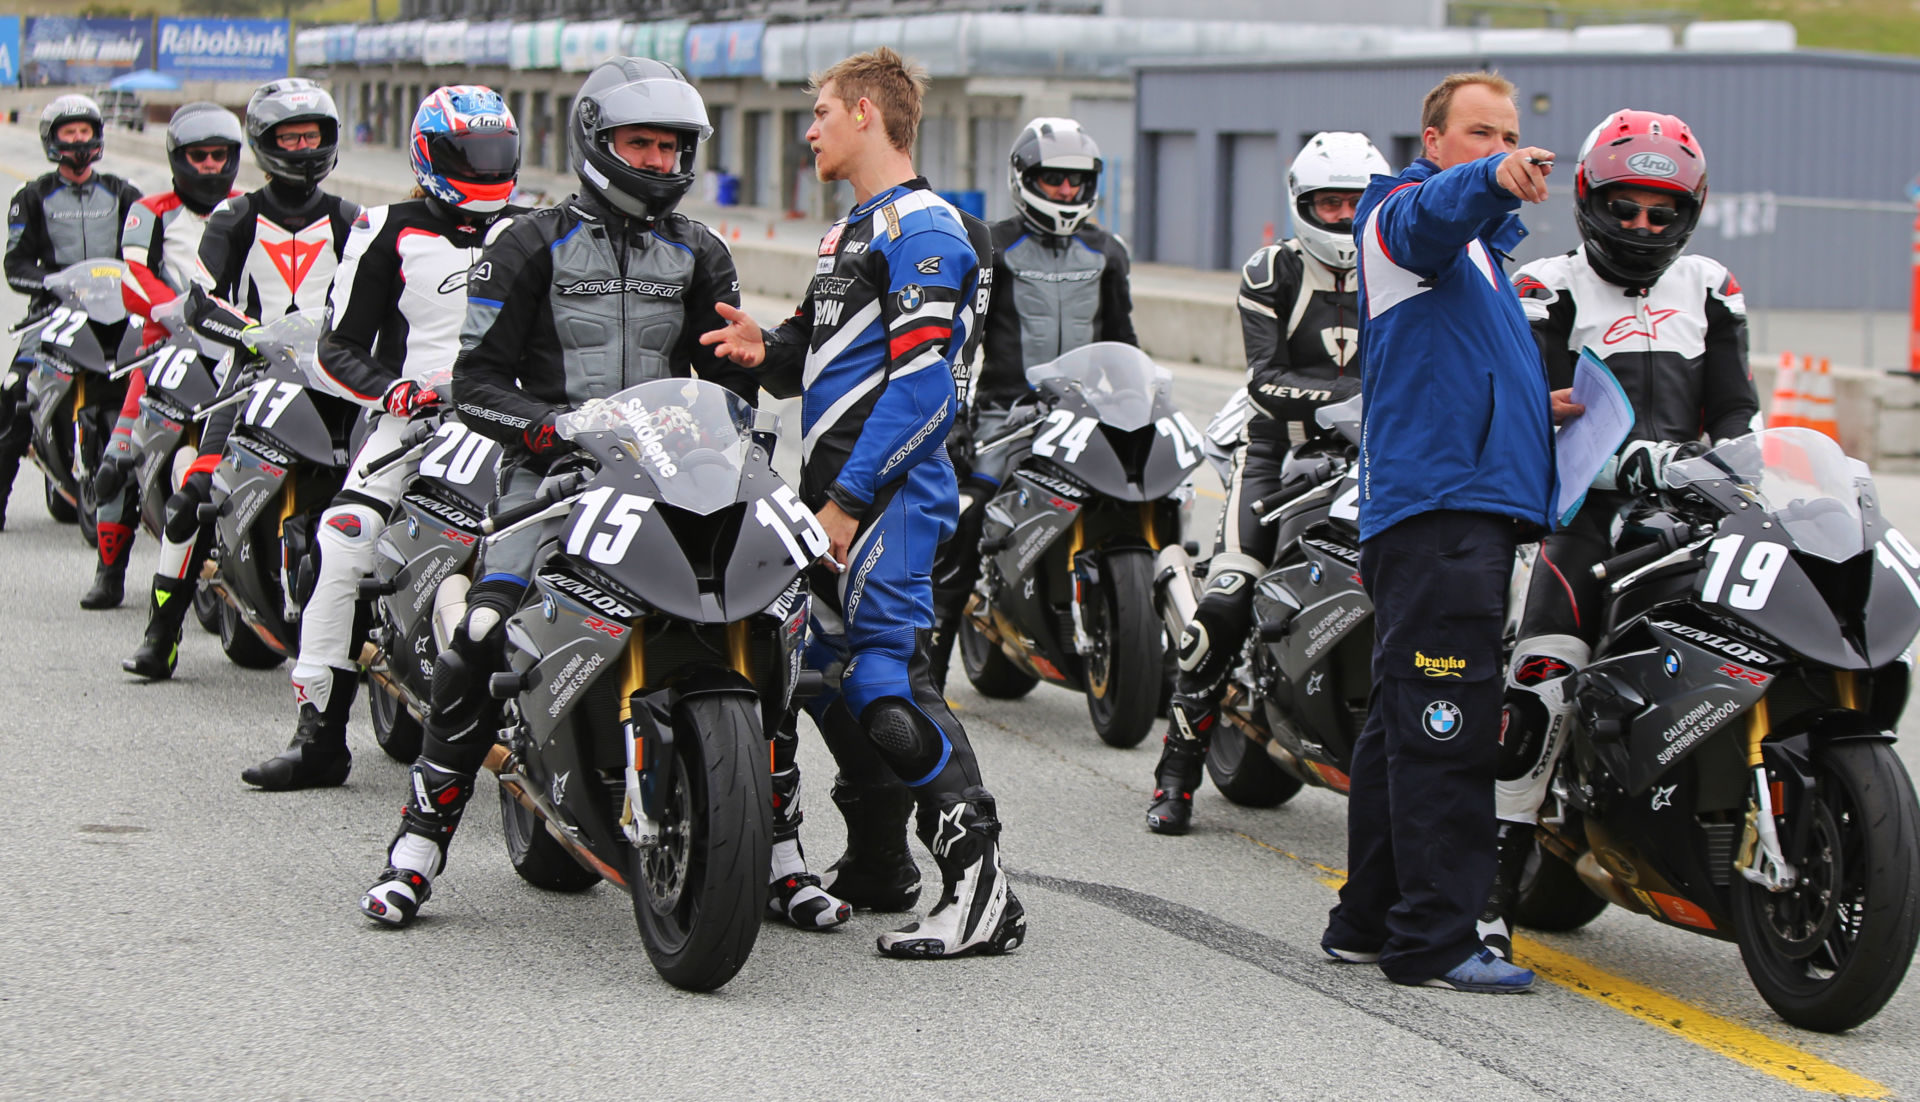 California Superbike School students lined up on pit lane at Laguna Seca. Photo by etechphoto.com, courtesy California Superbike School.